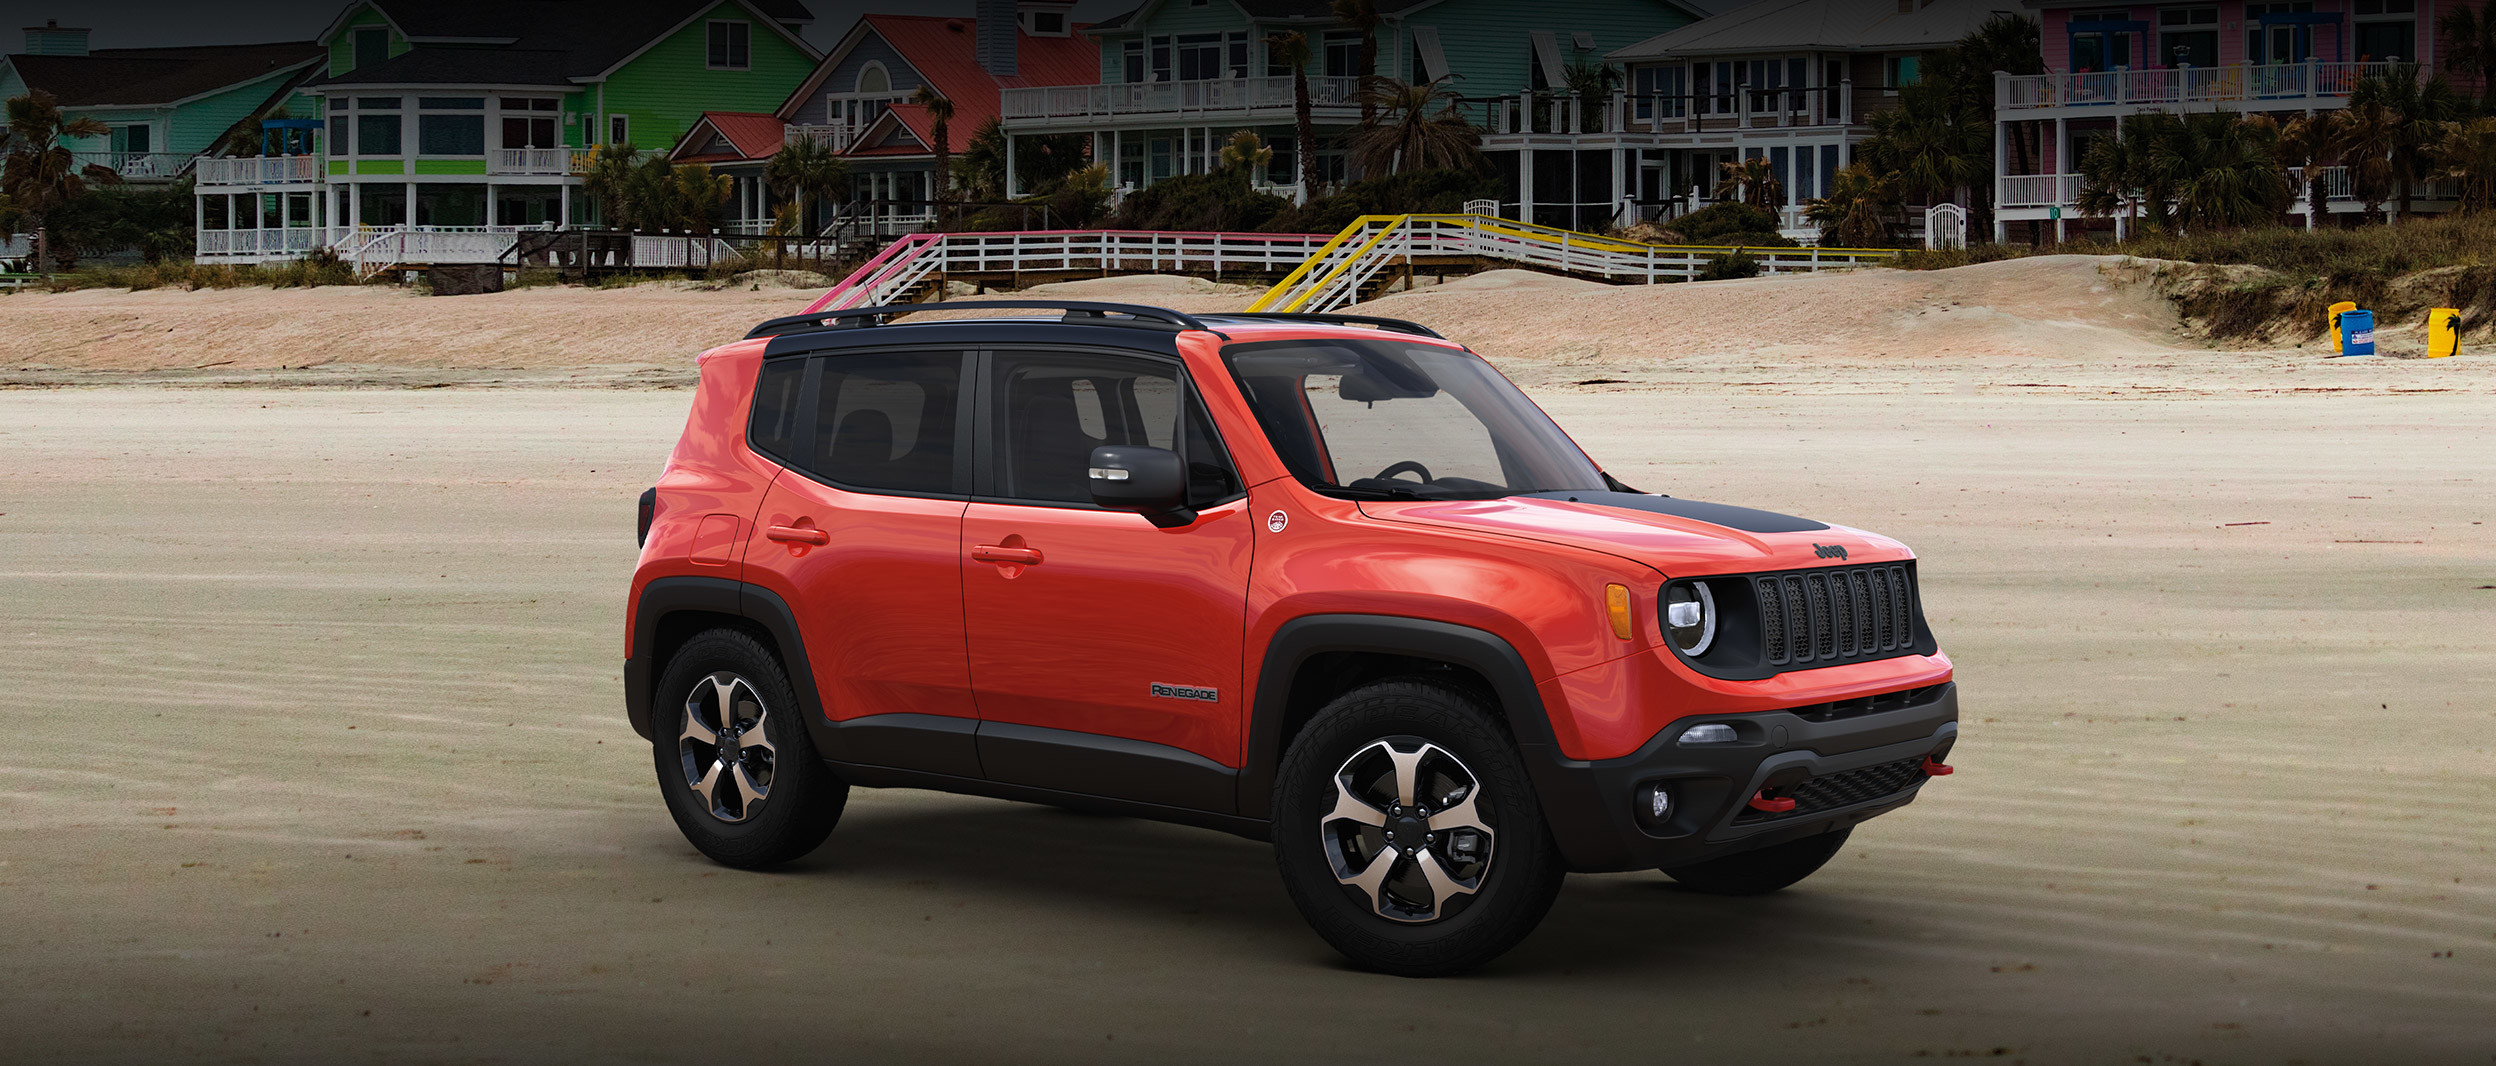 Front three quarter view of 2020 Jeep Renegade parked outside in a city